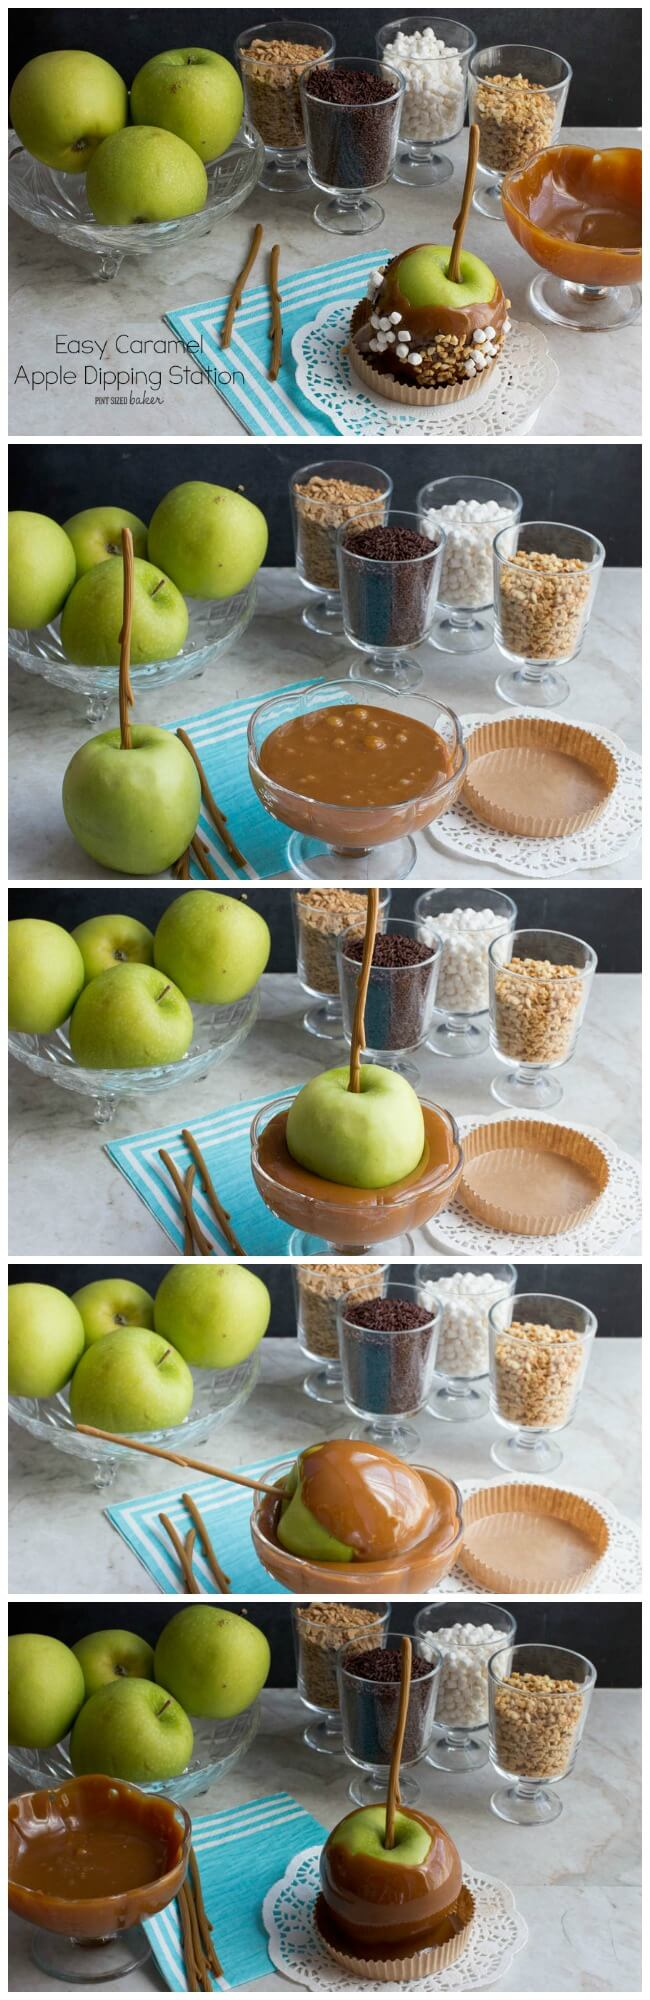 Caramel apples can be a pain. Get the right tools to make beautiful caramel apples this fall.